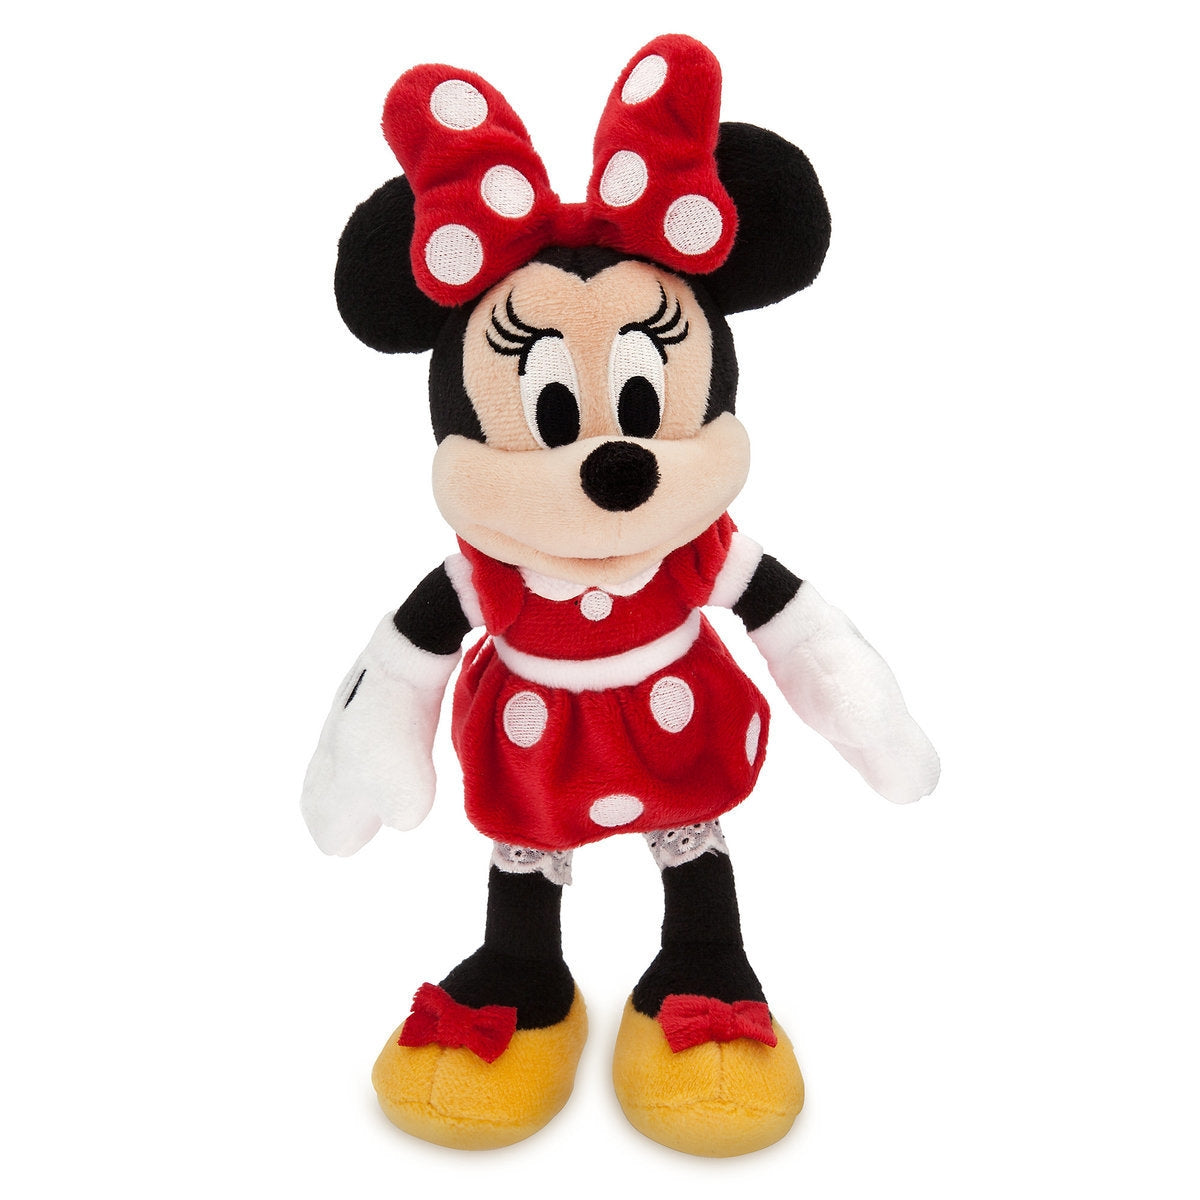 Minnie Mouse Plush - Red - Bean Bag - 9.5 inch